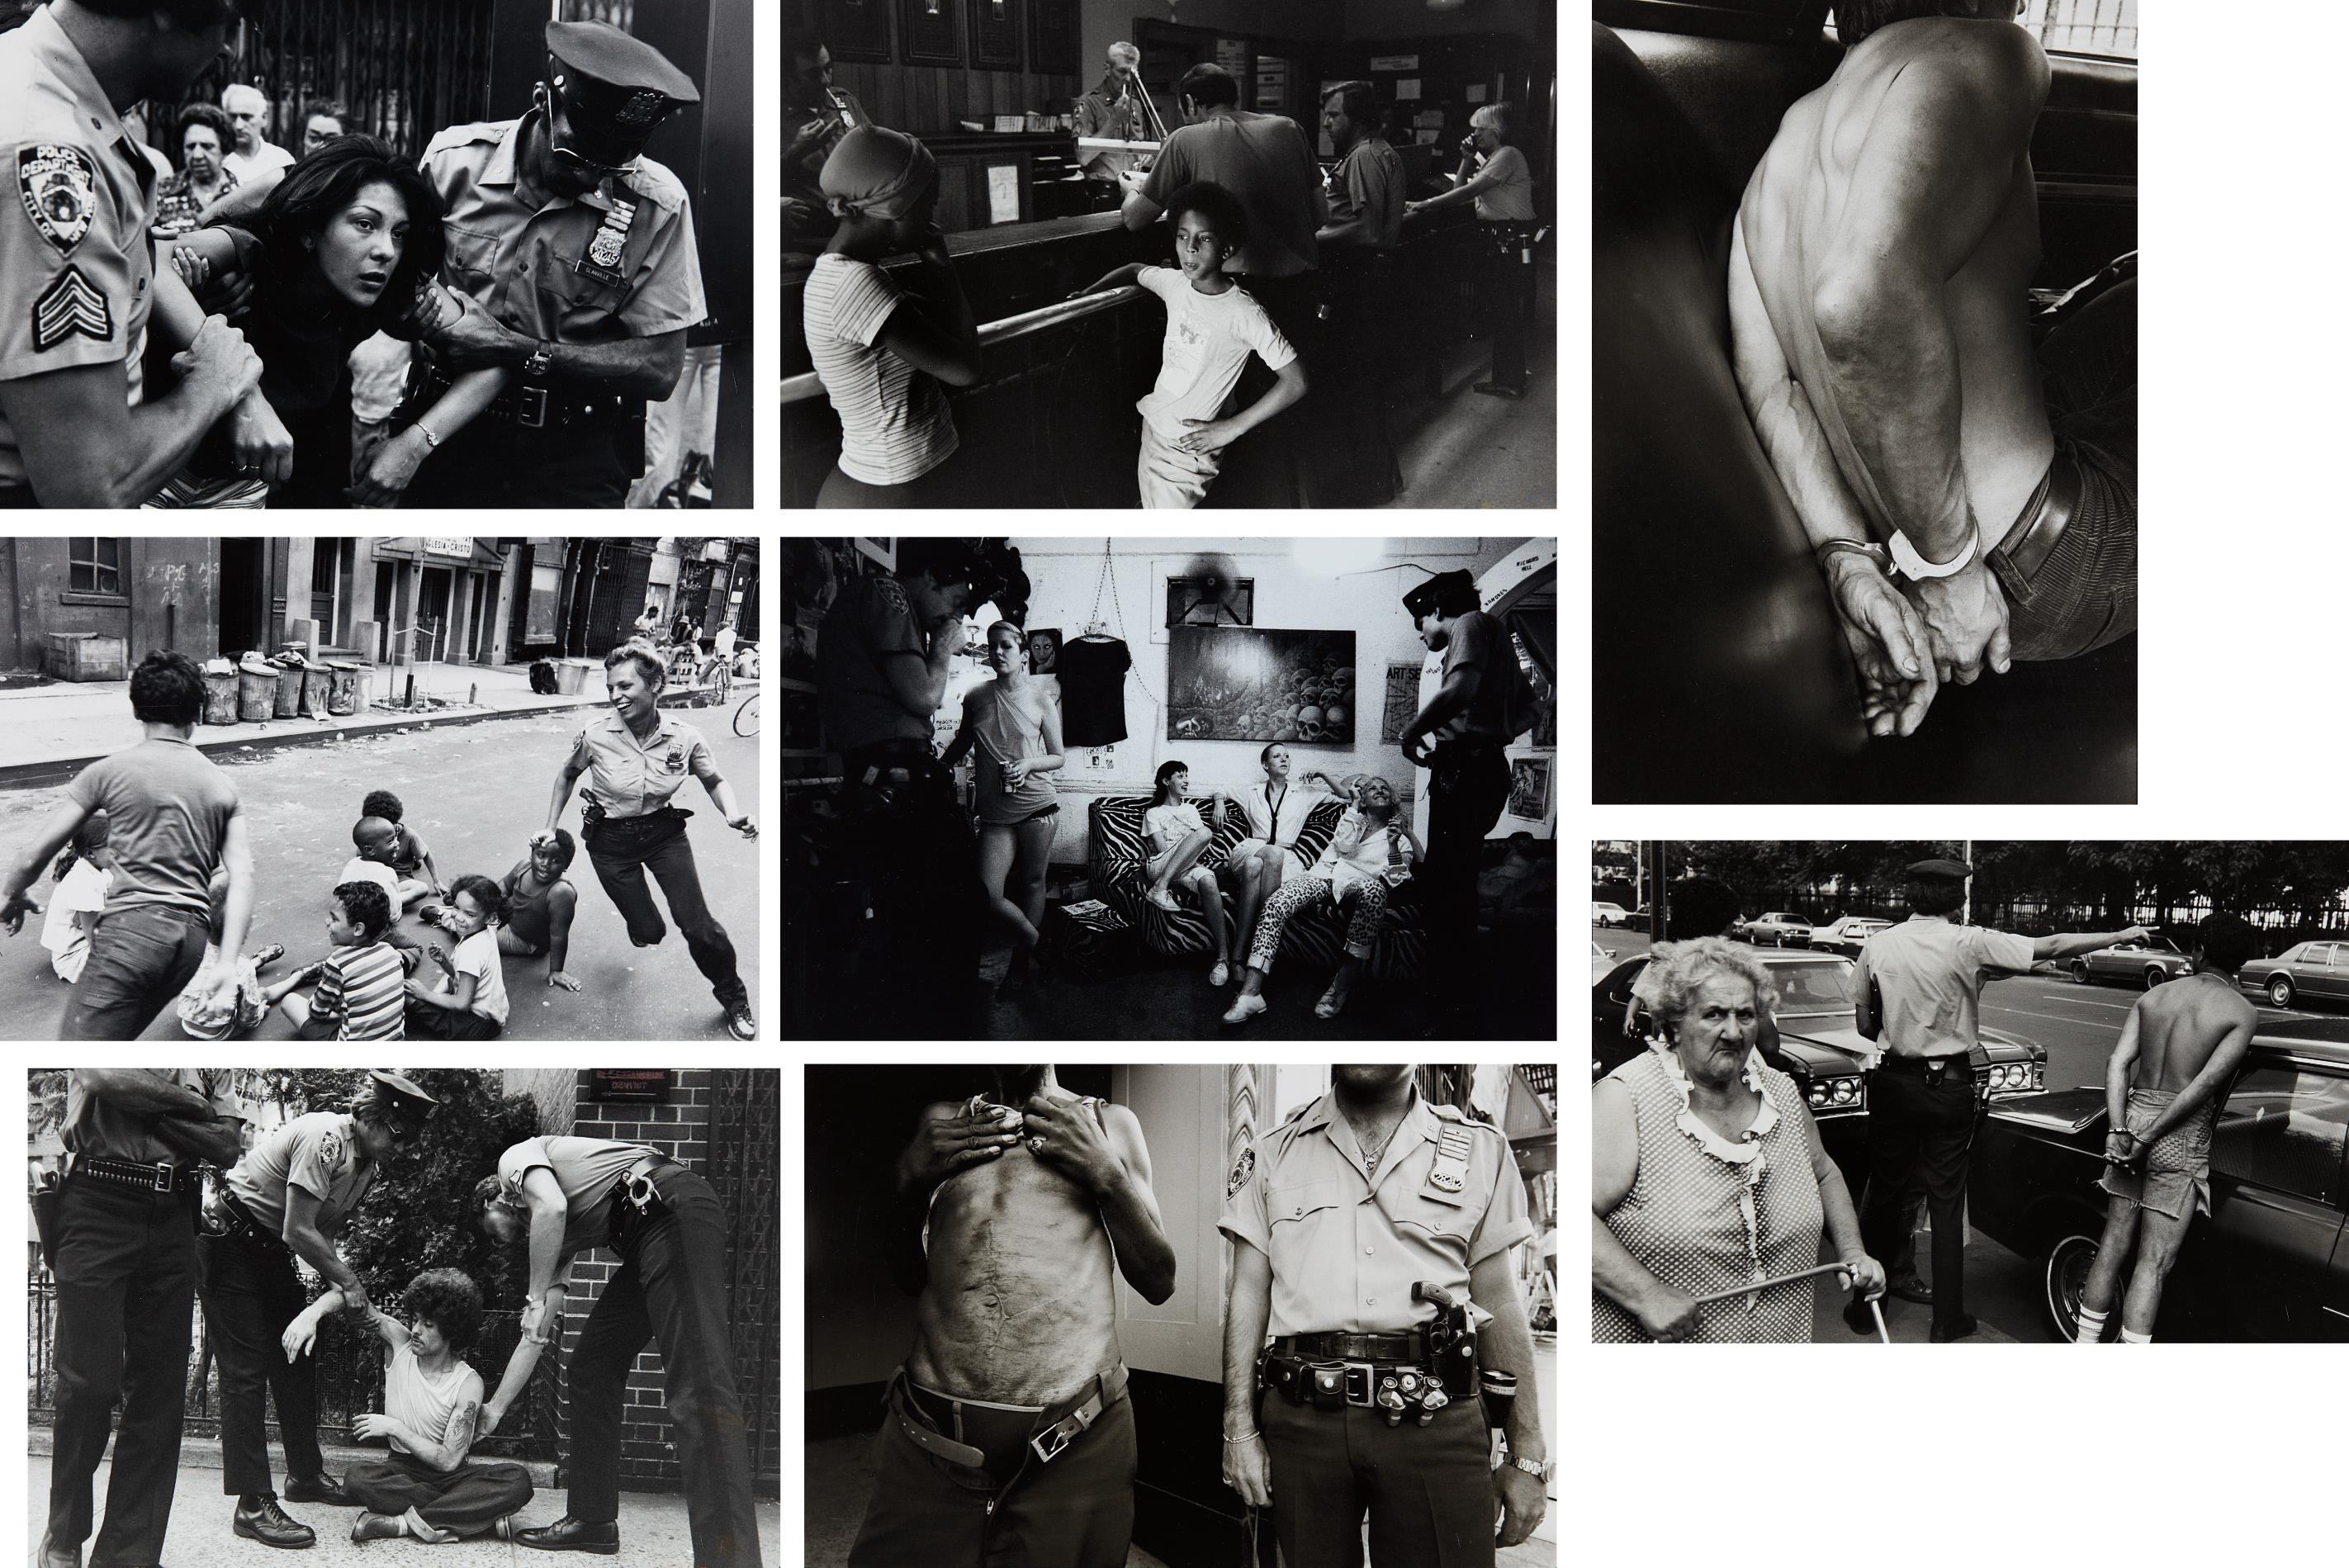 Leonard Freed-Selected Images From Police Work-1978